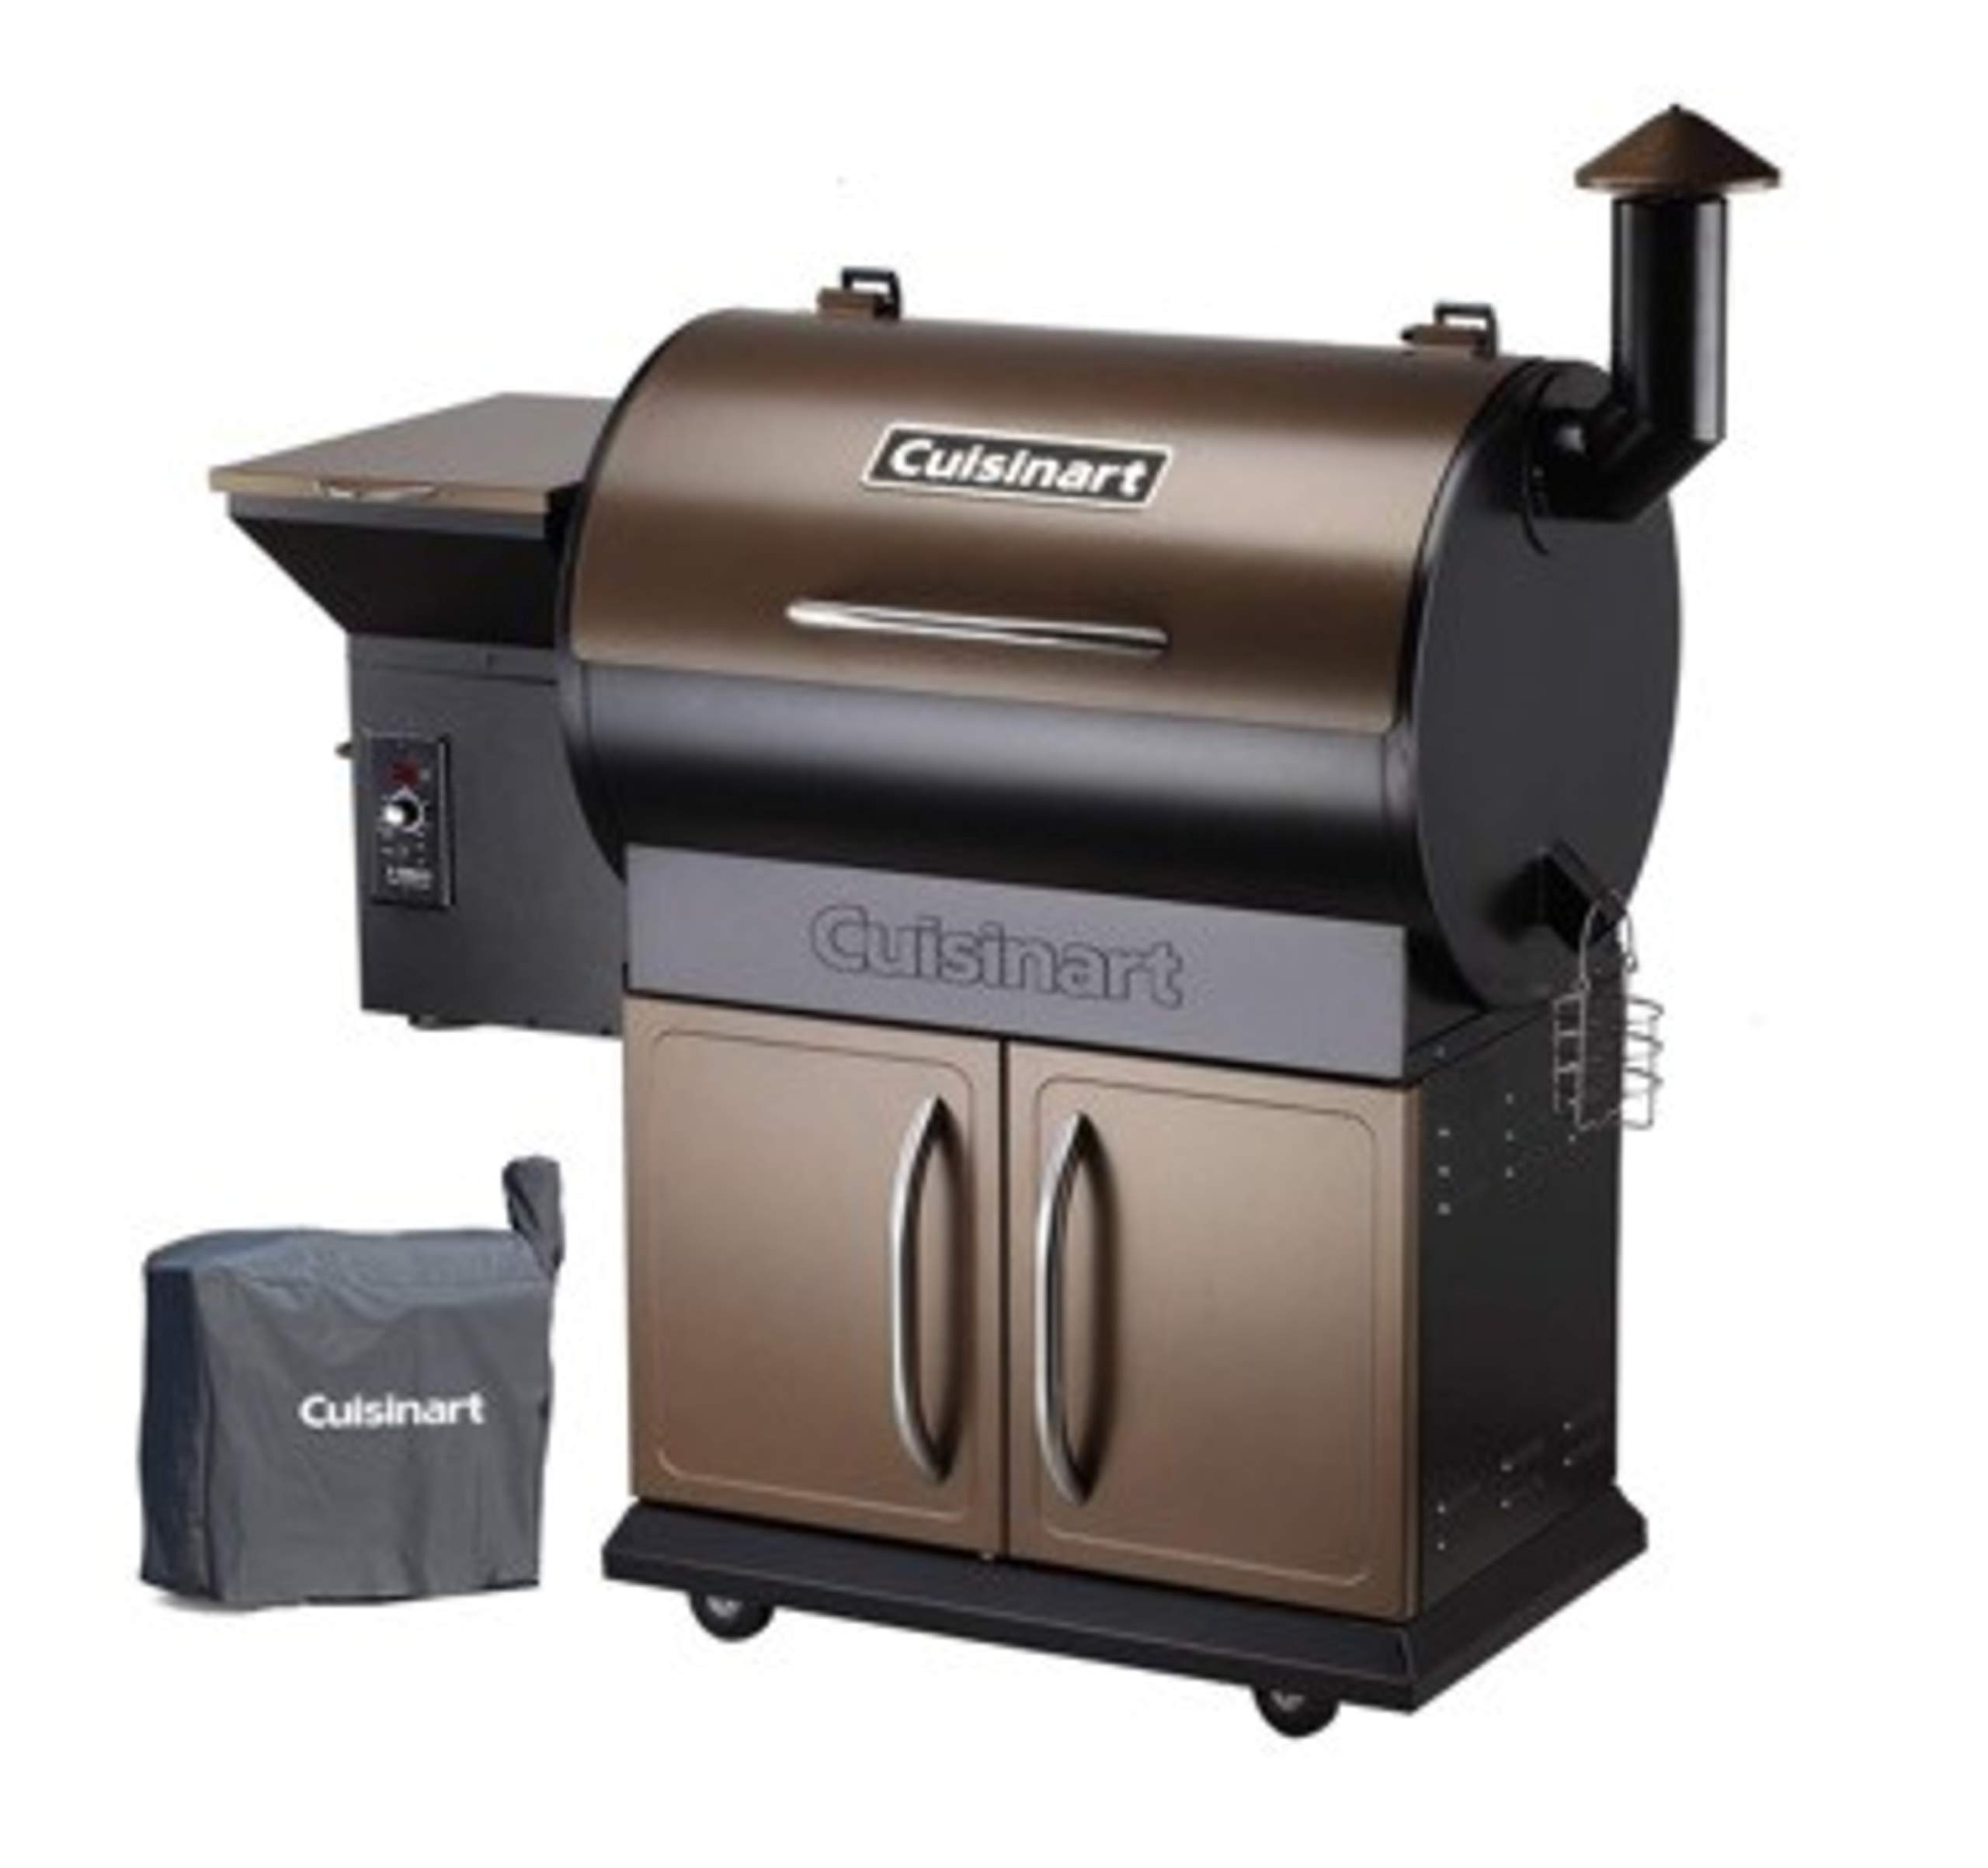 Cuisinart CPG-6000 Deluxe Wood Pellet Grill and Smoker by Cuisinart